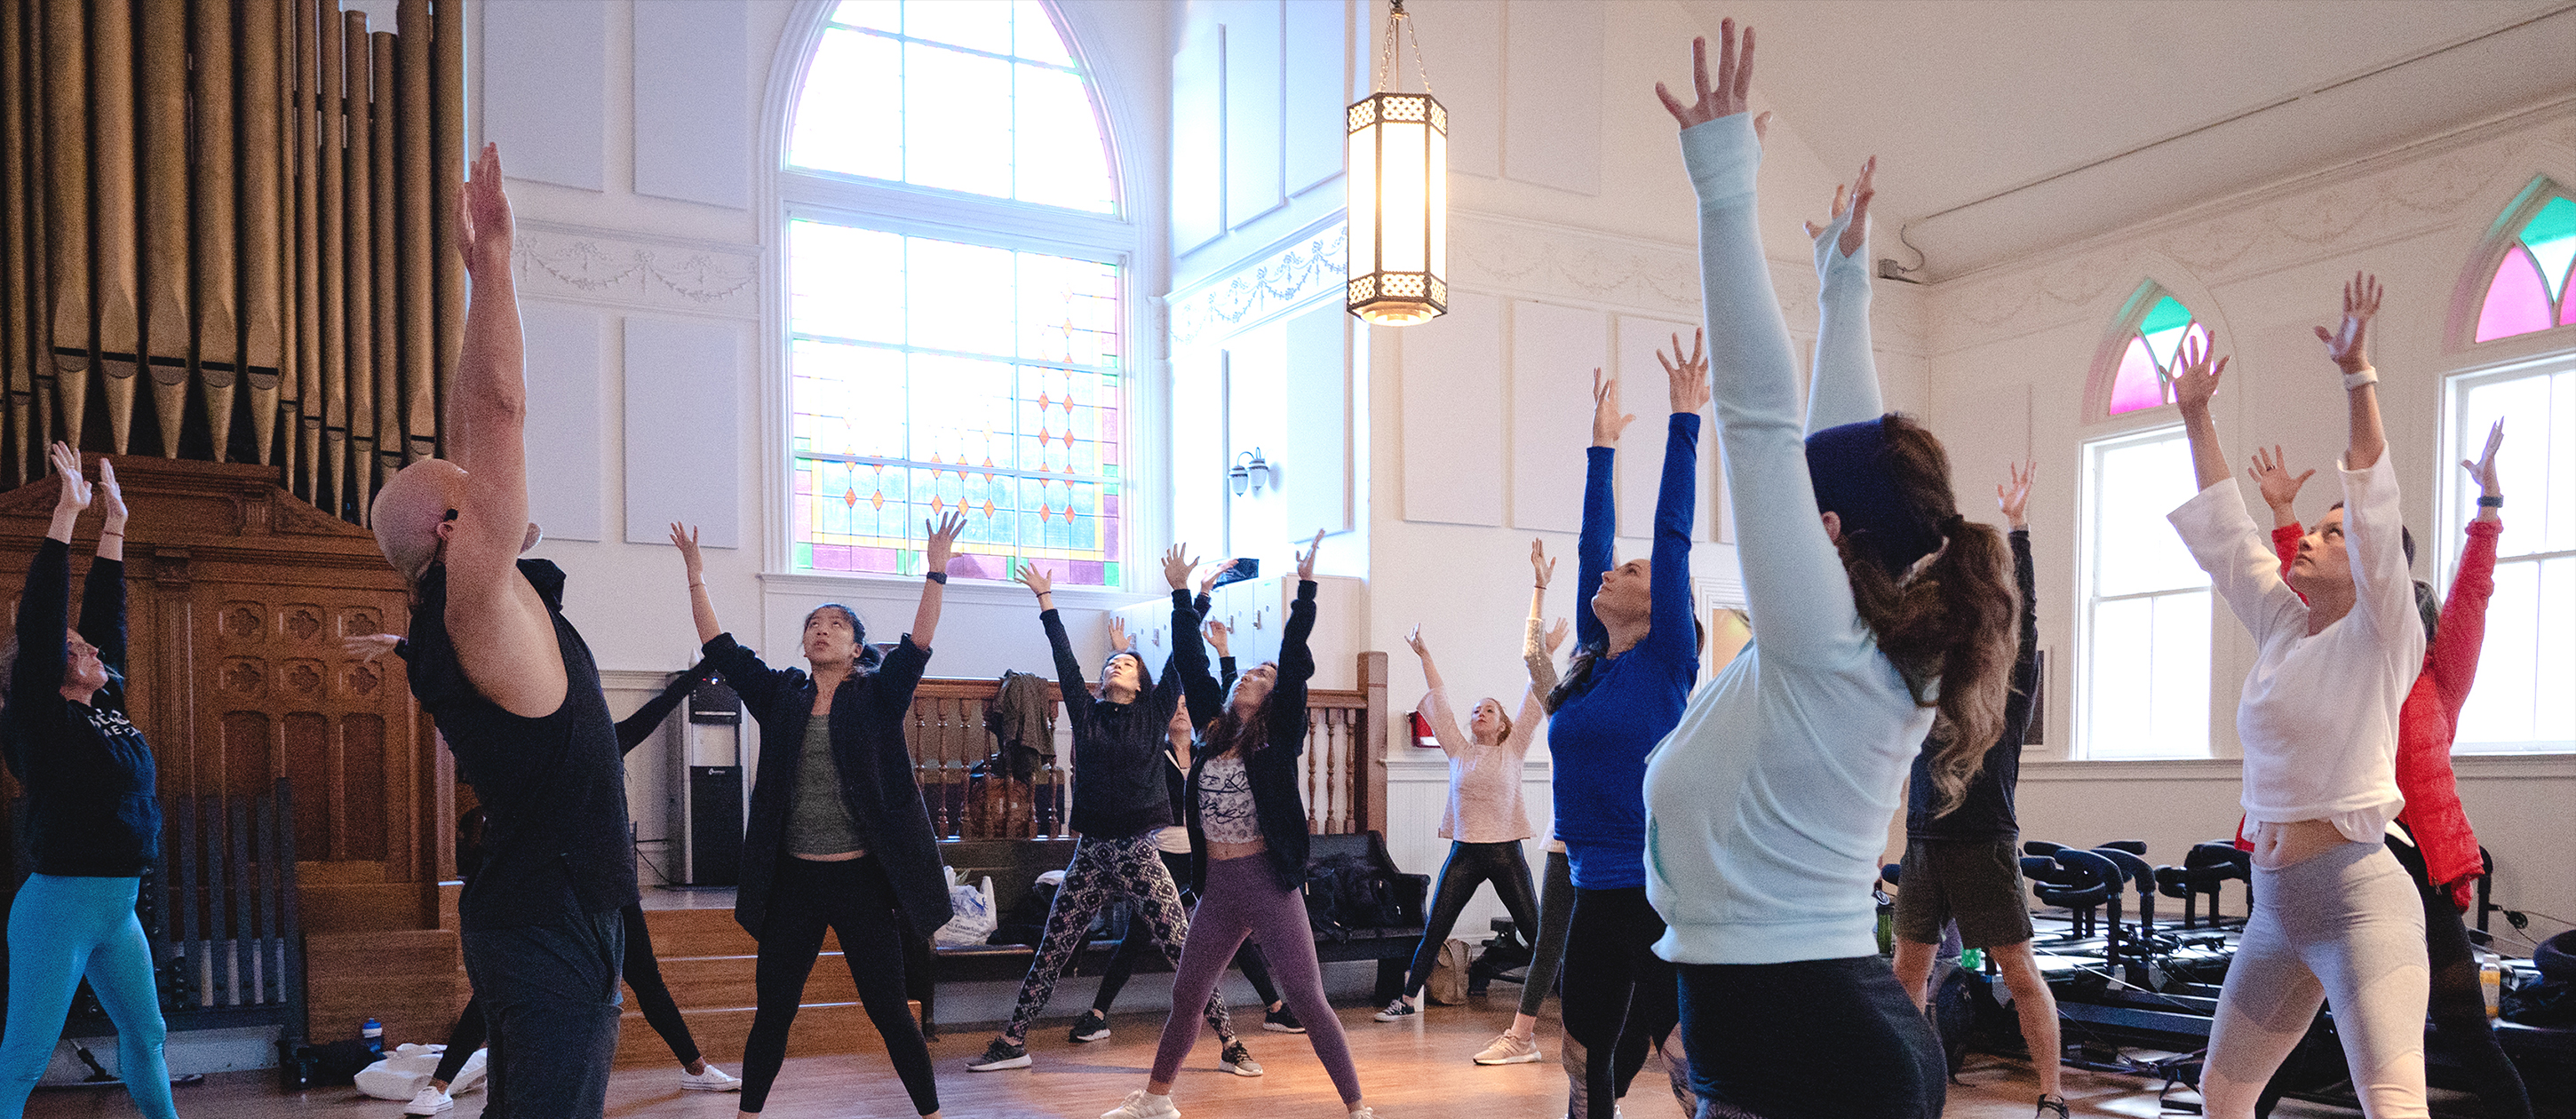 quantum flow fitness in a church